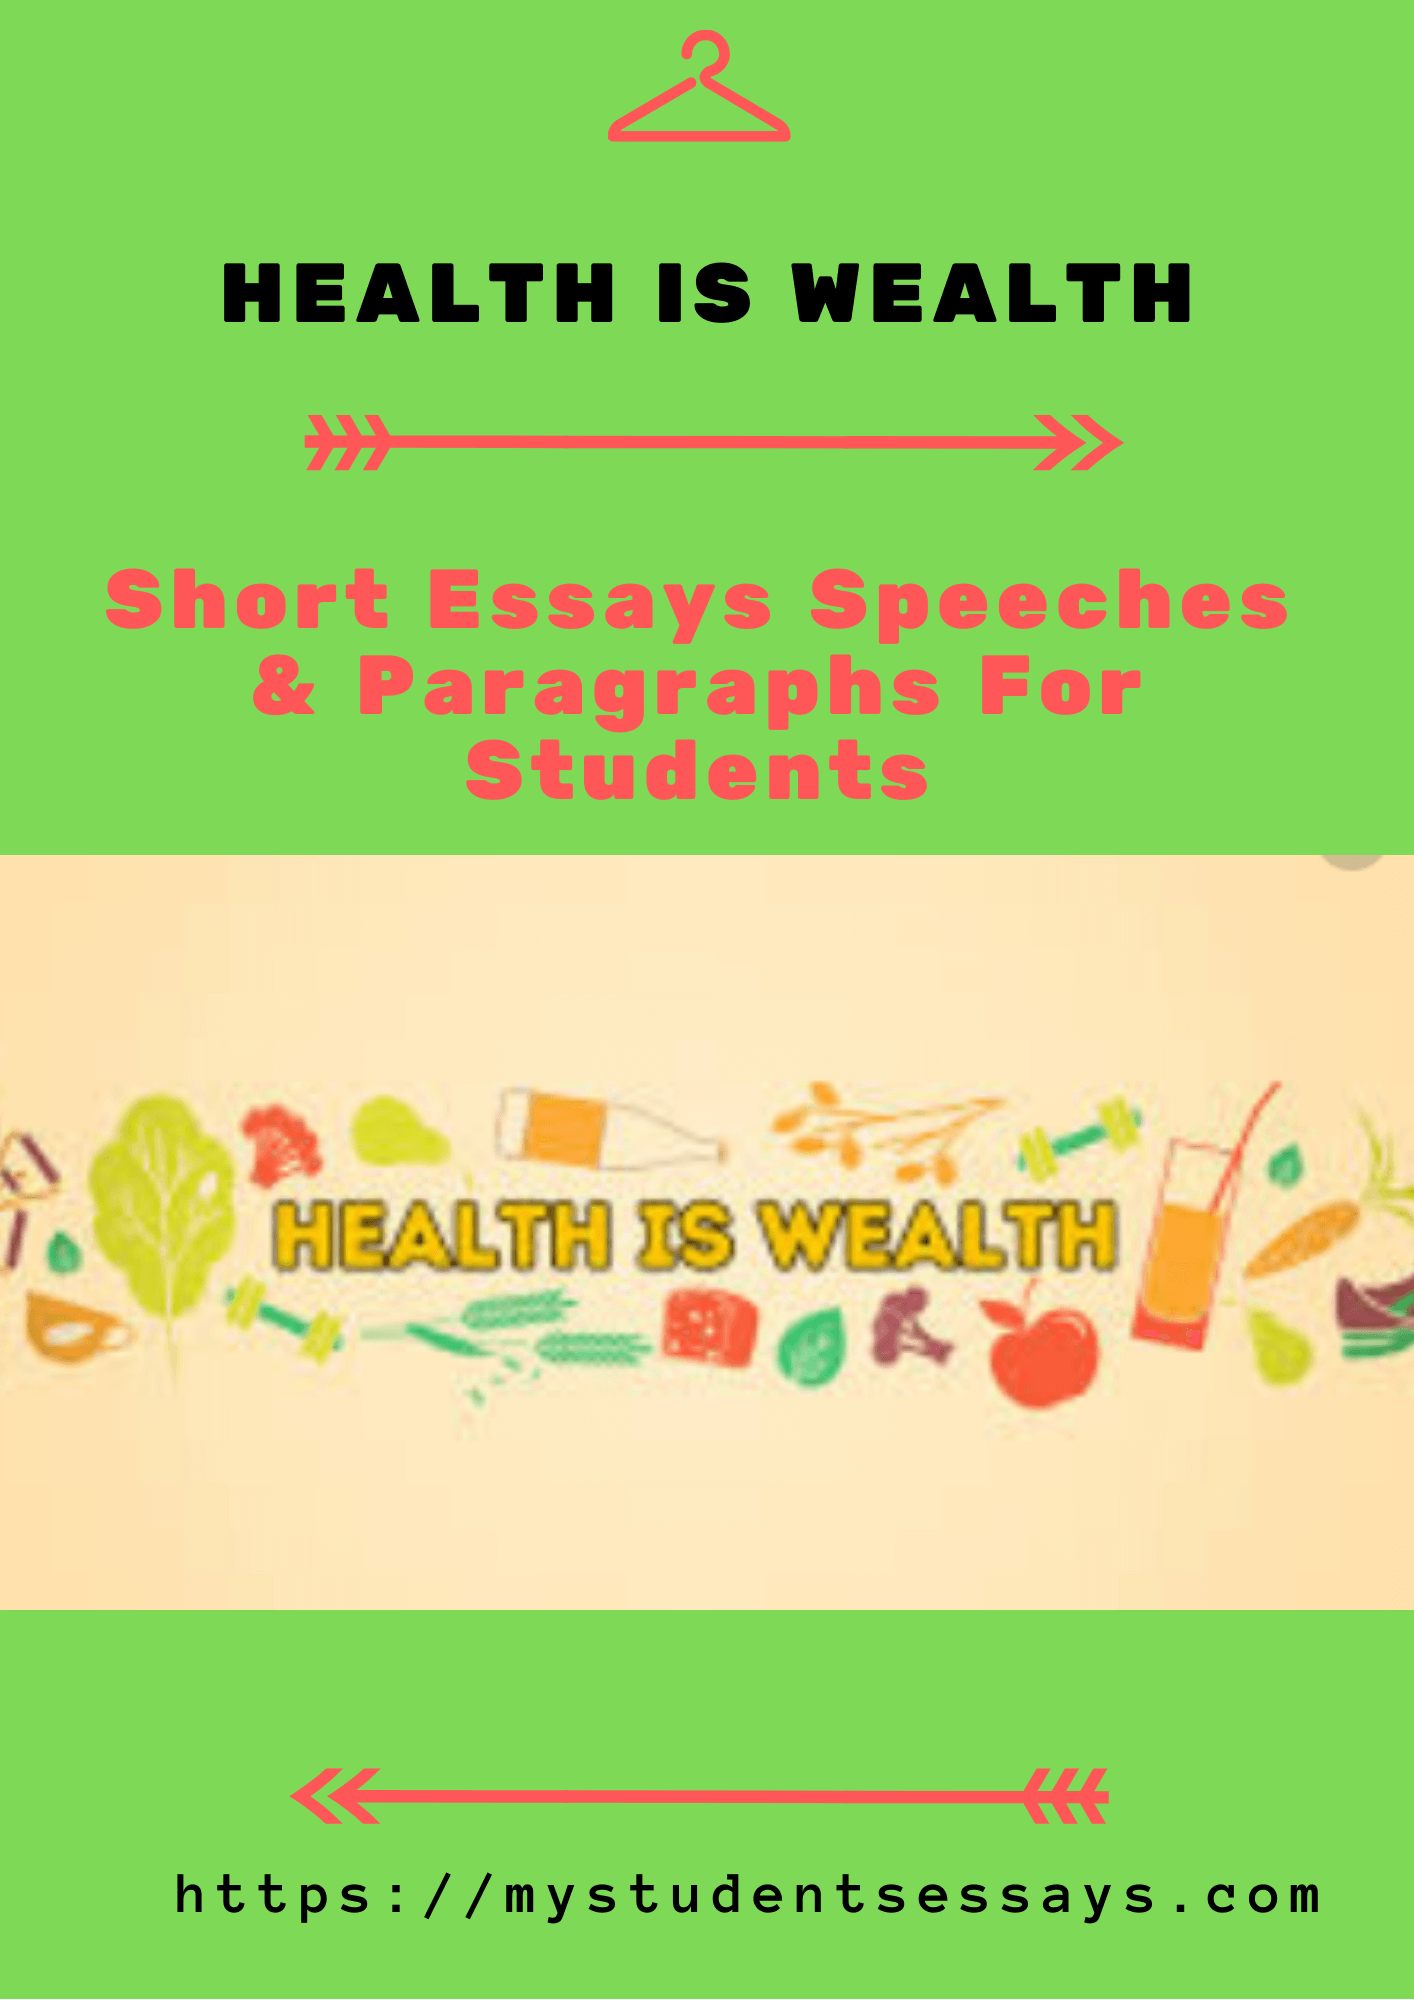 health is wealth, essay, short essay and Paragraph for students